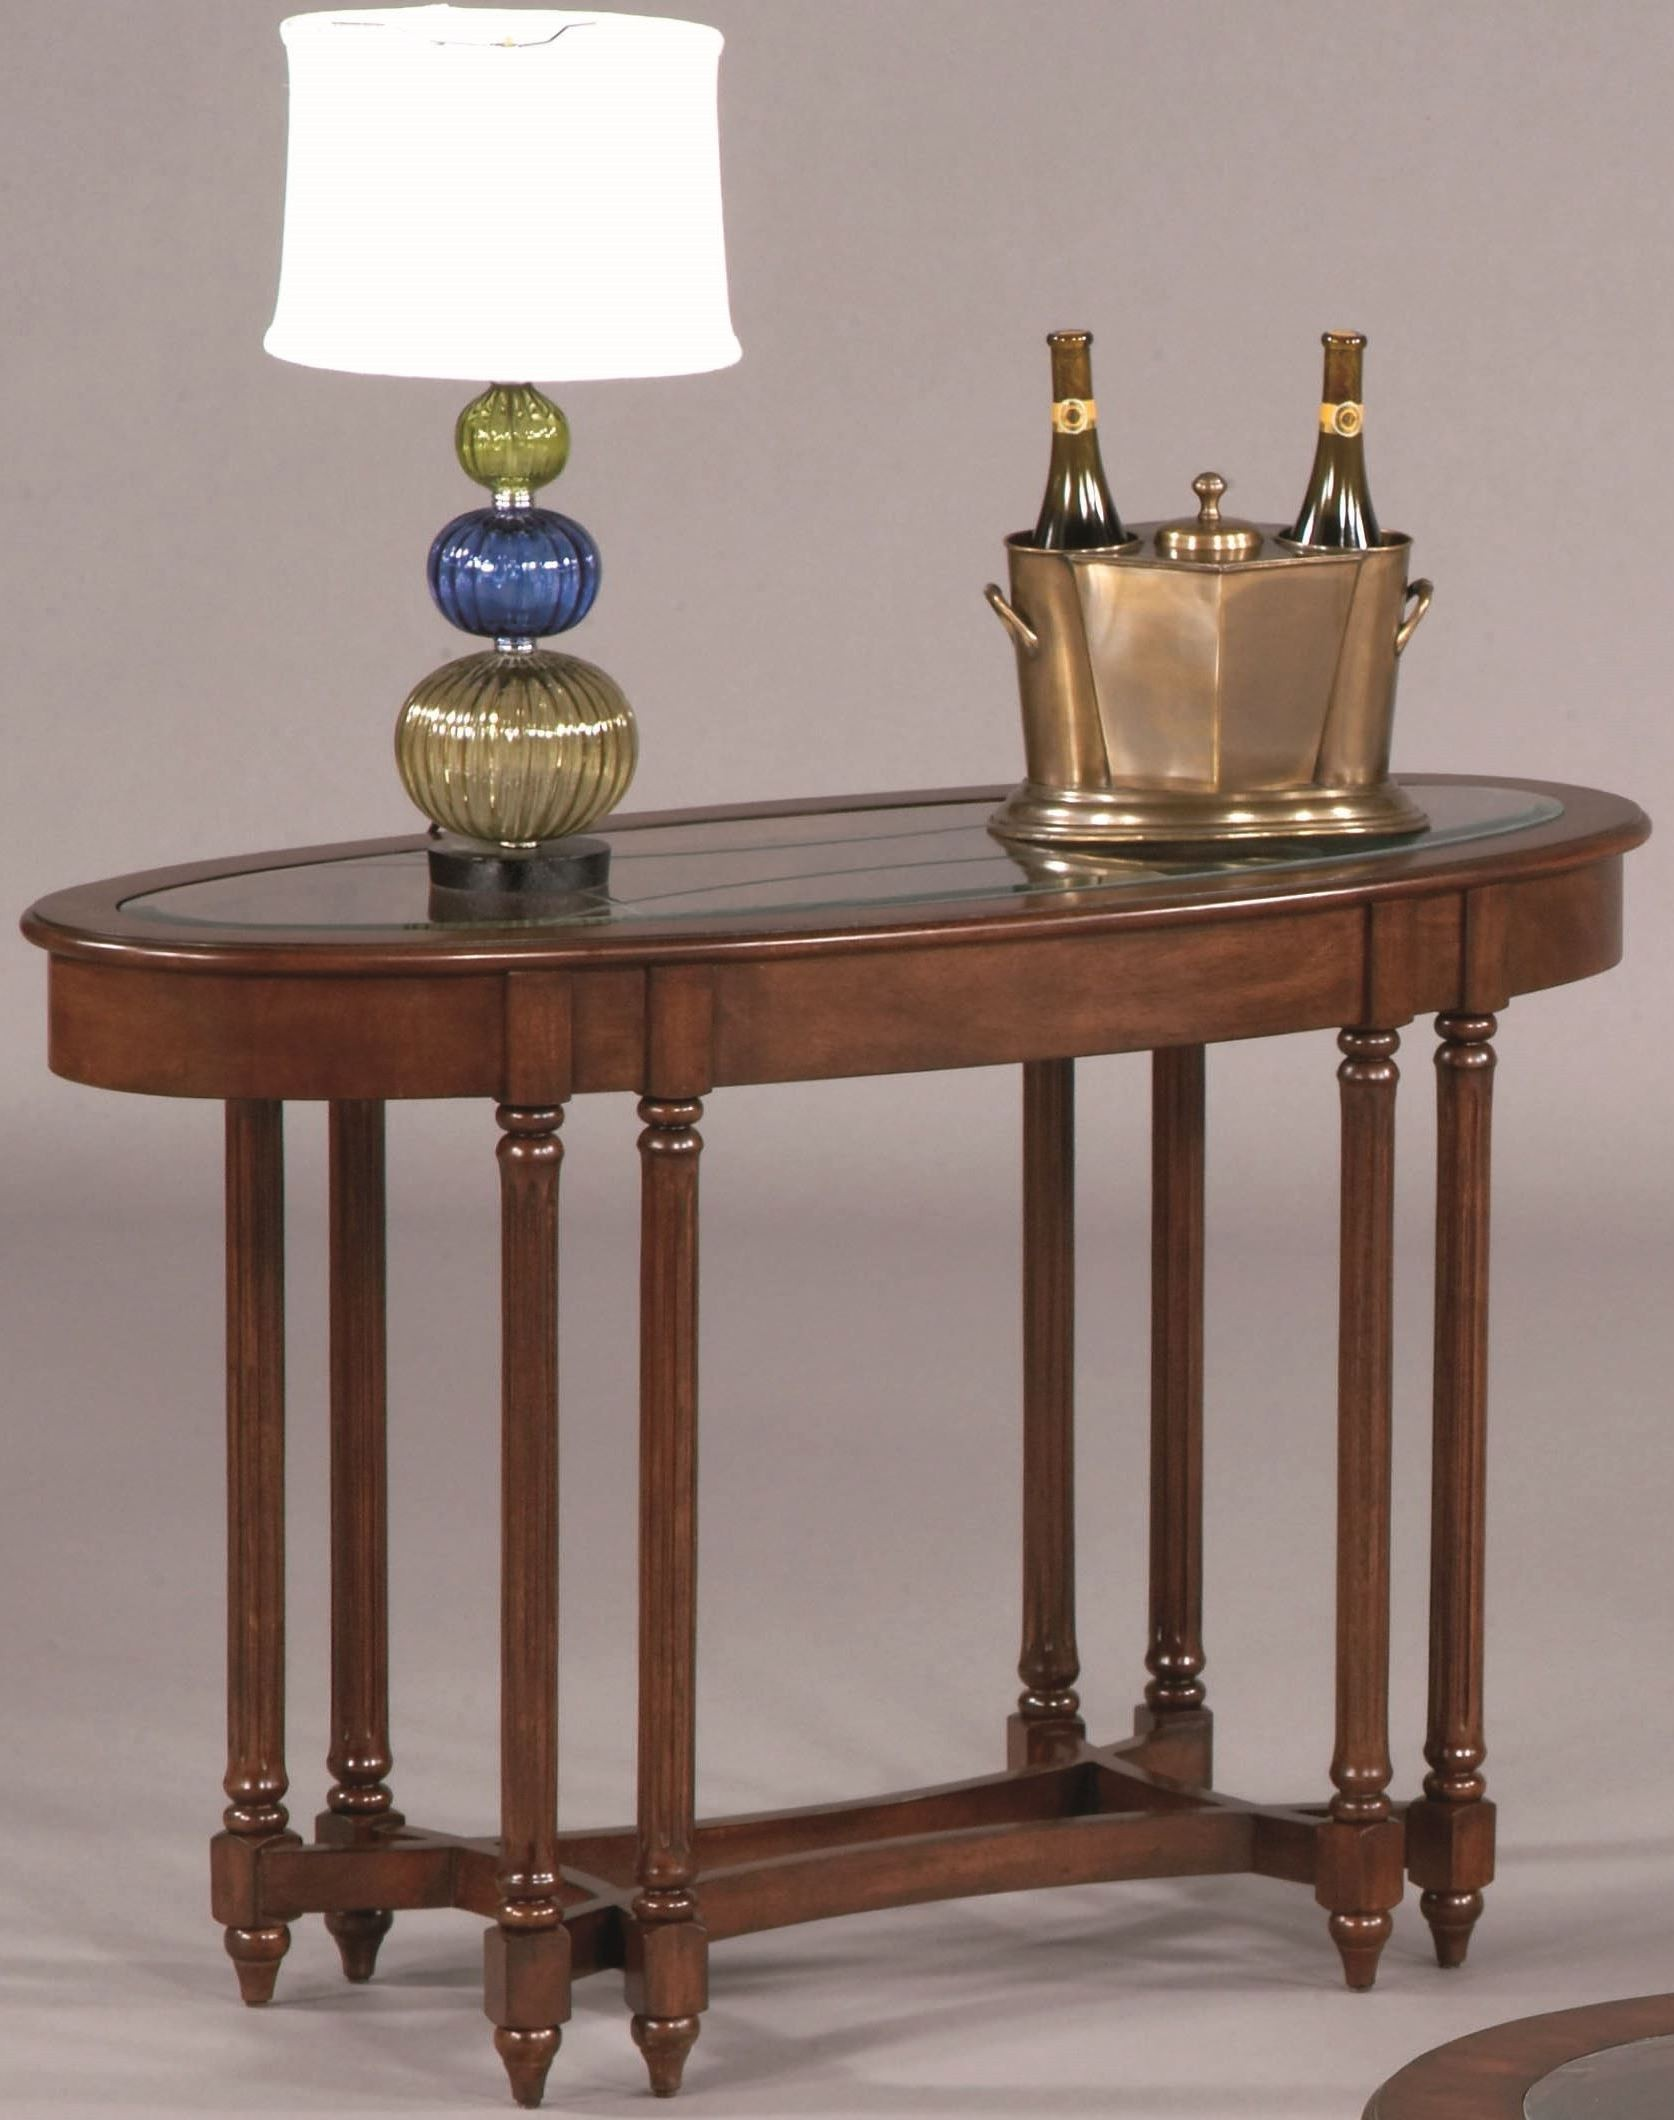 canton heights dark berry oval sofa table 44007 09. Black Bedroom Furniture Sets. Home Design Ideas